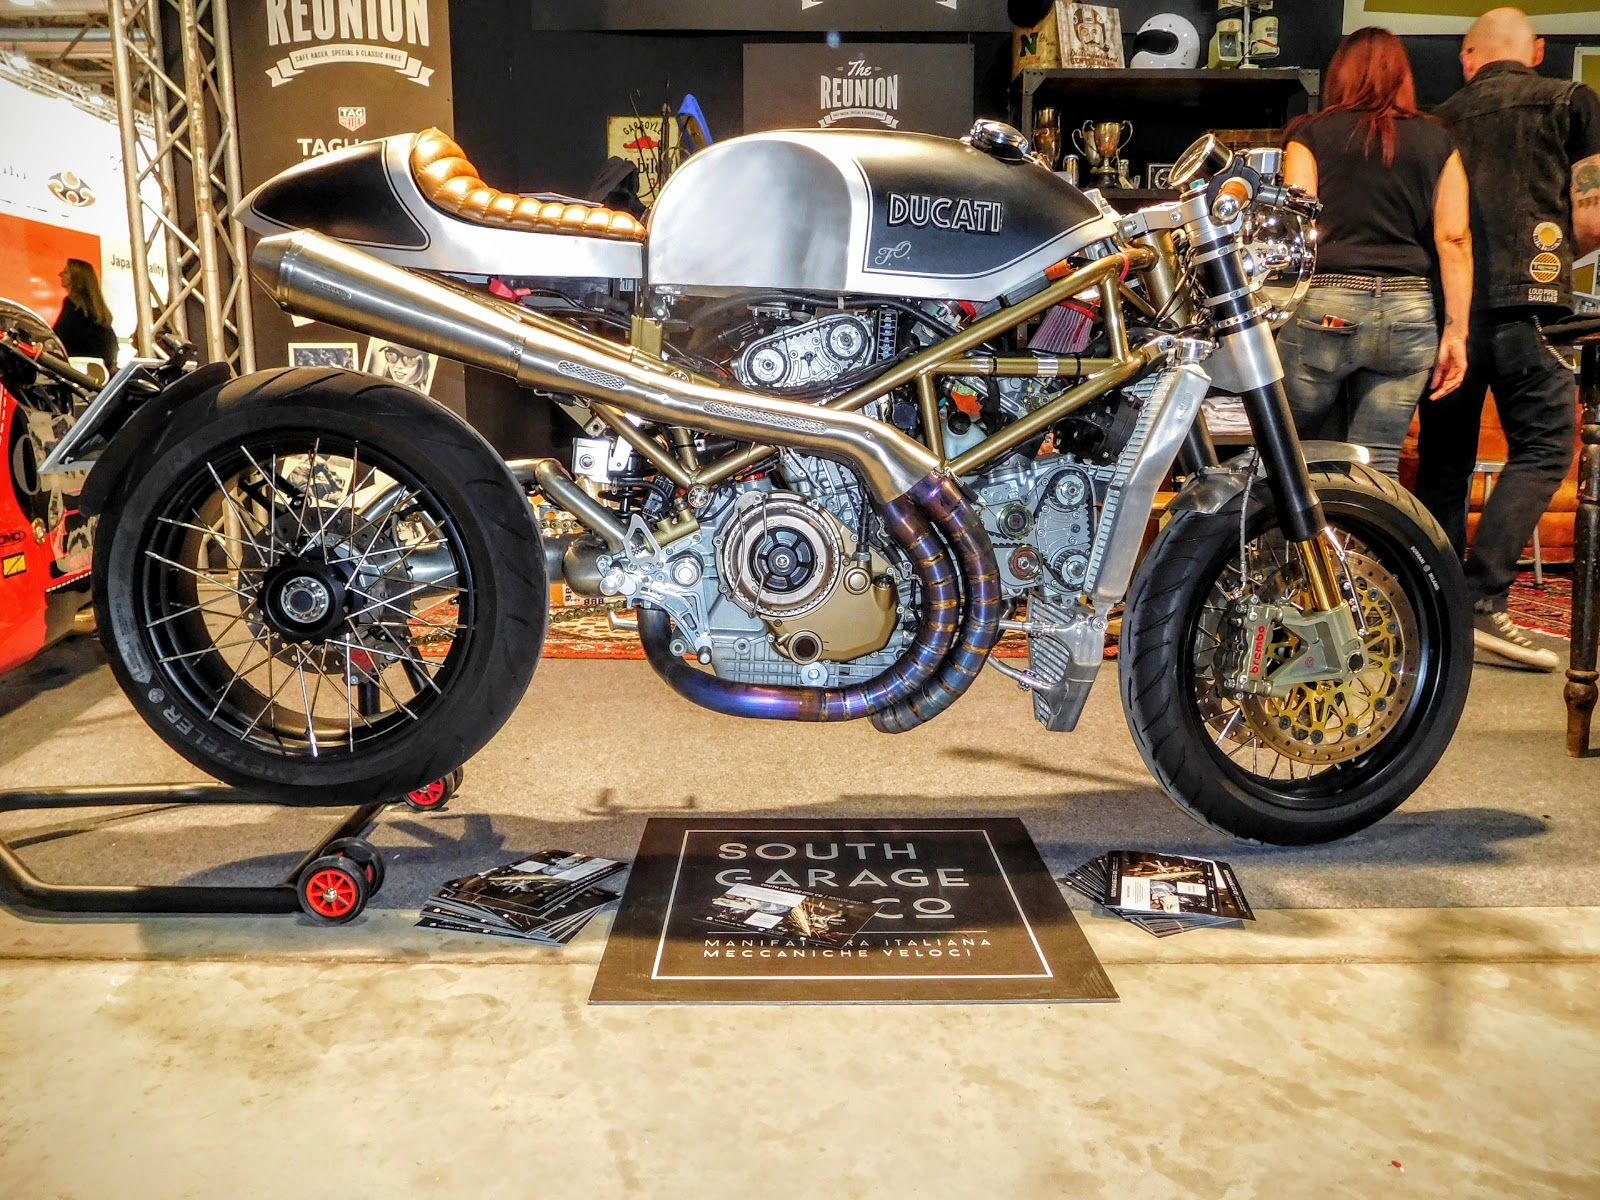 NYDucati: Custom Ducati Cafe Racer shot by Tigh Loughhead